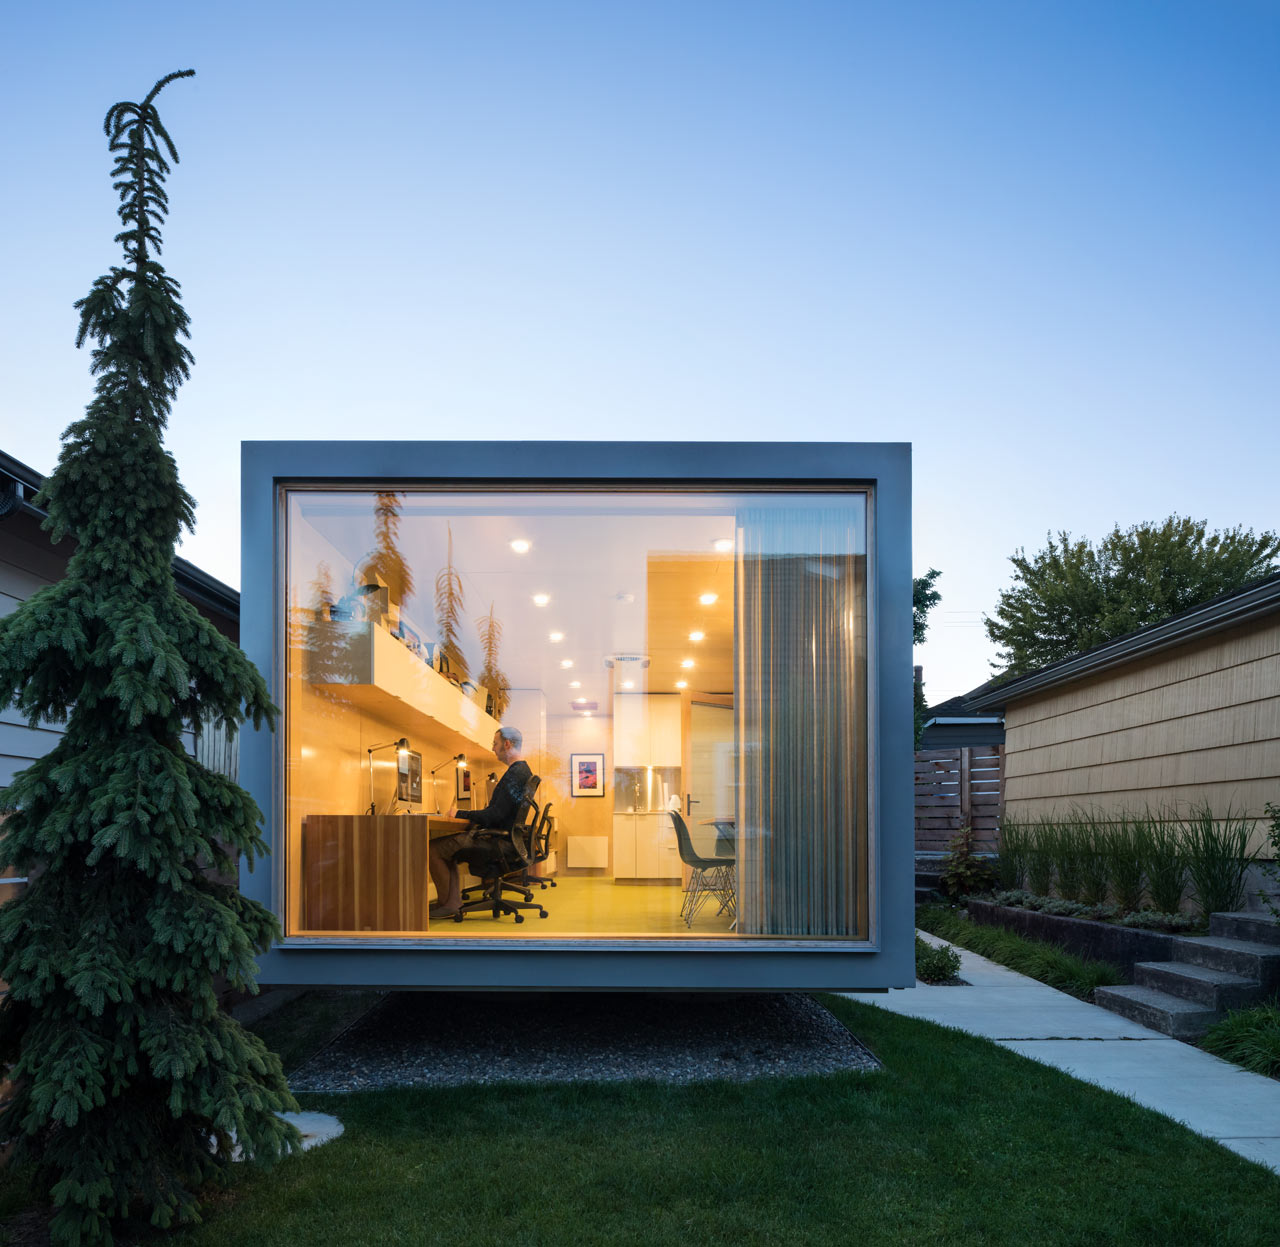 Randy Bens Turns A Shipping Container Into An Architecture